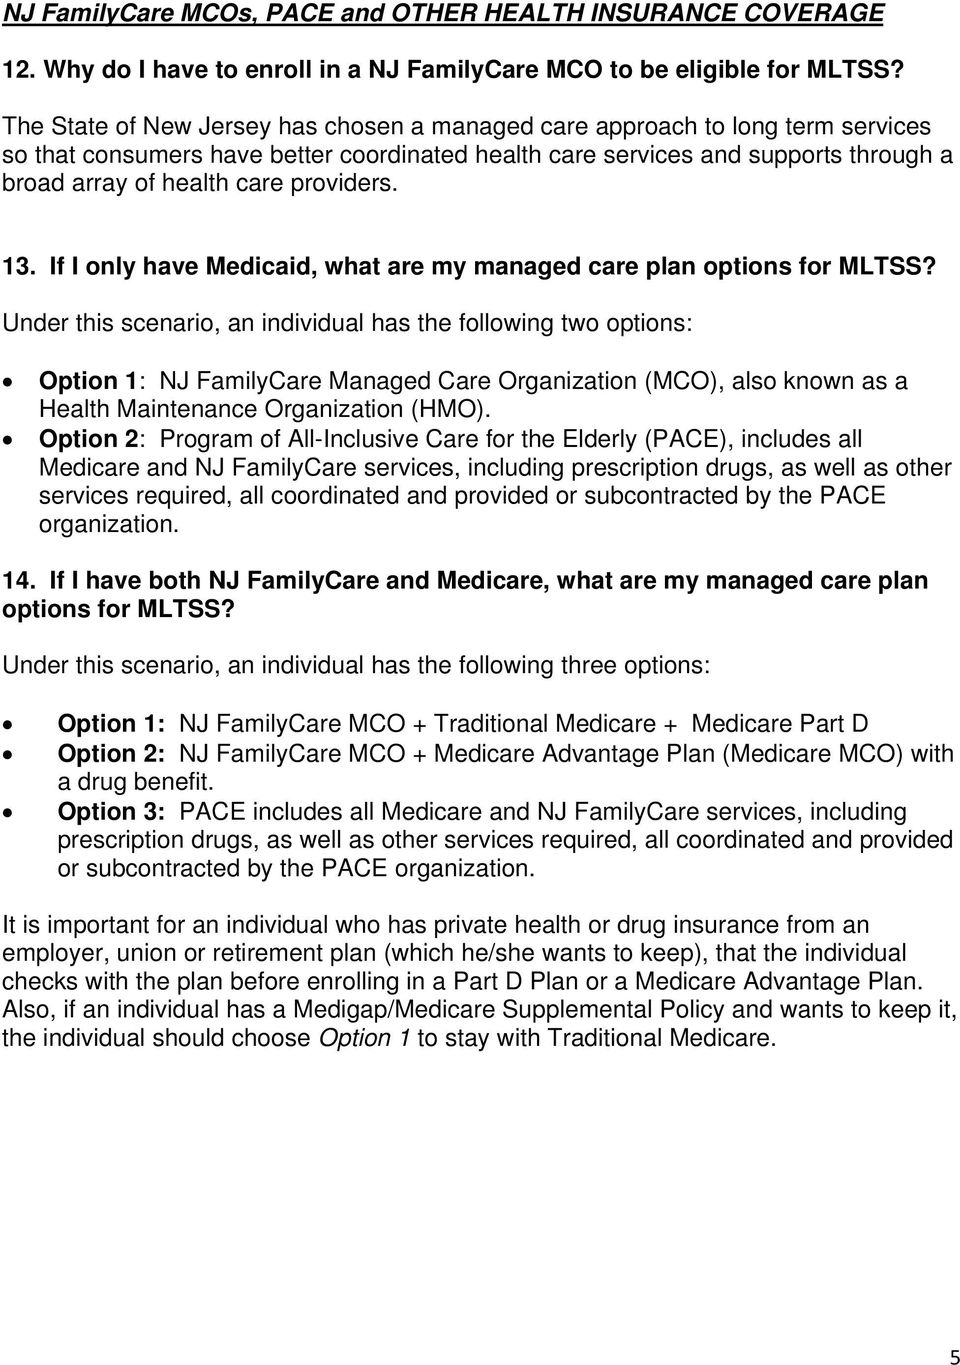 providers. 13. If I only have Medicaid, what are my managed care plan options for MLTSS?